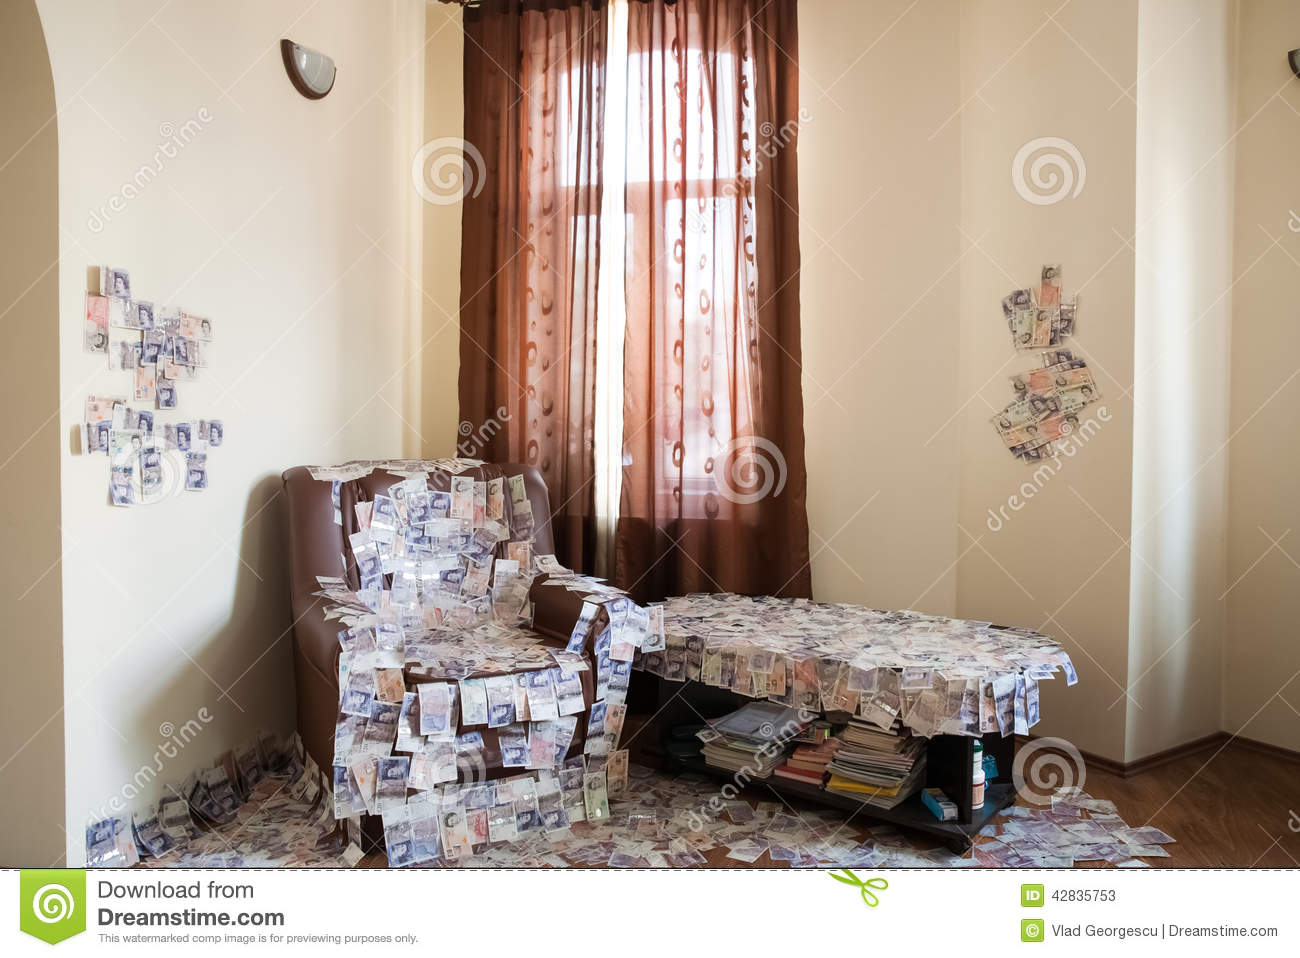 financial success a room full of money uk pounds sterling